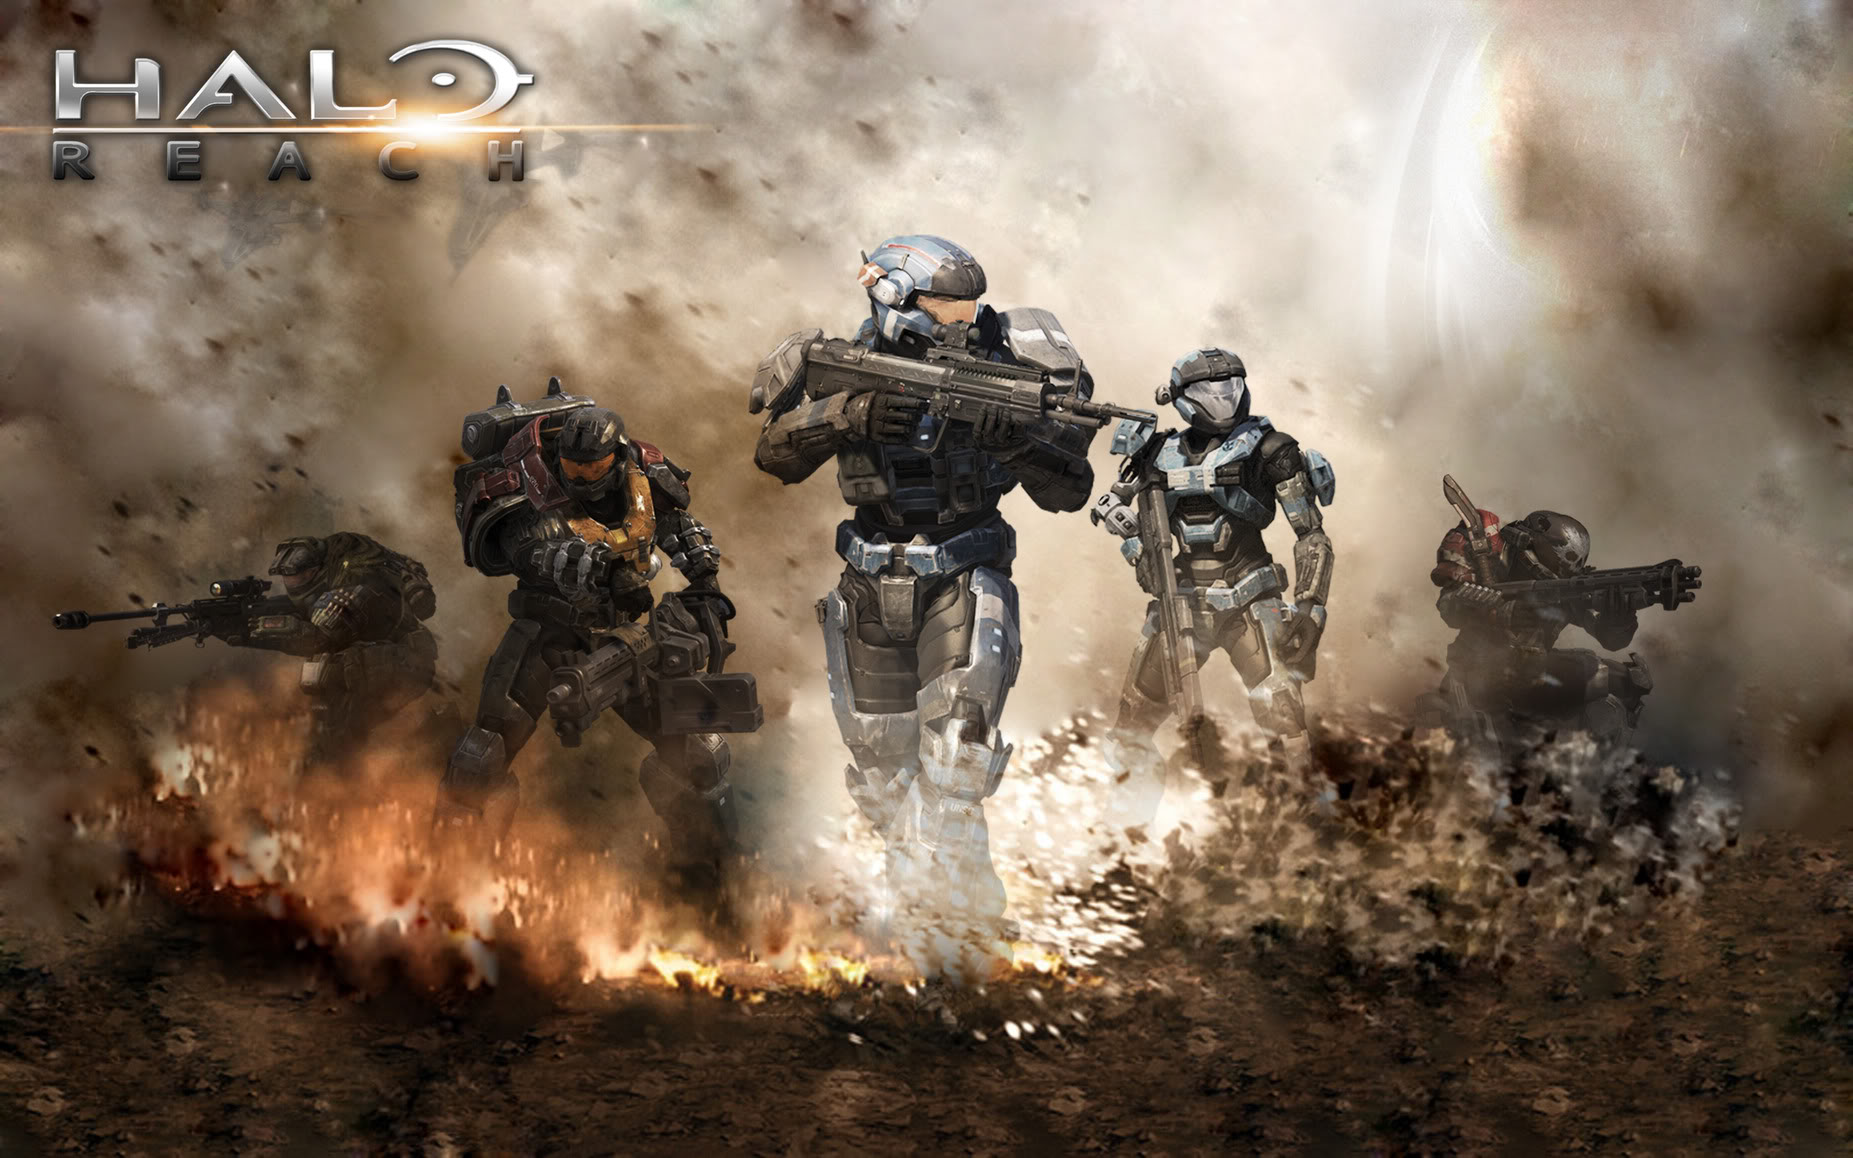 Halo Wallpapers   All About Halo Photo 26991071 1853x1158